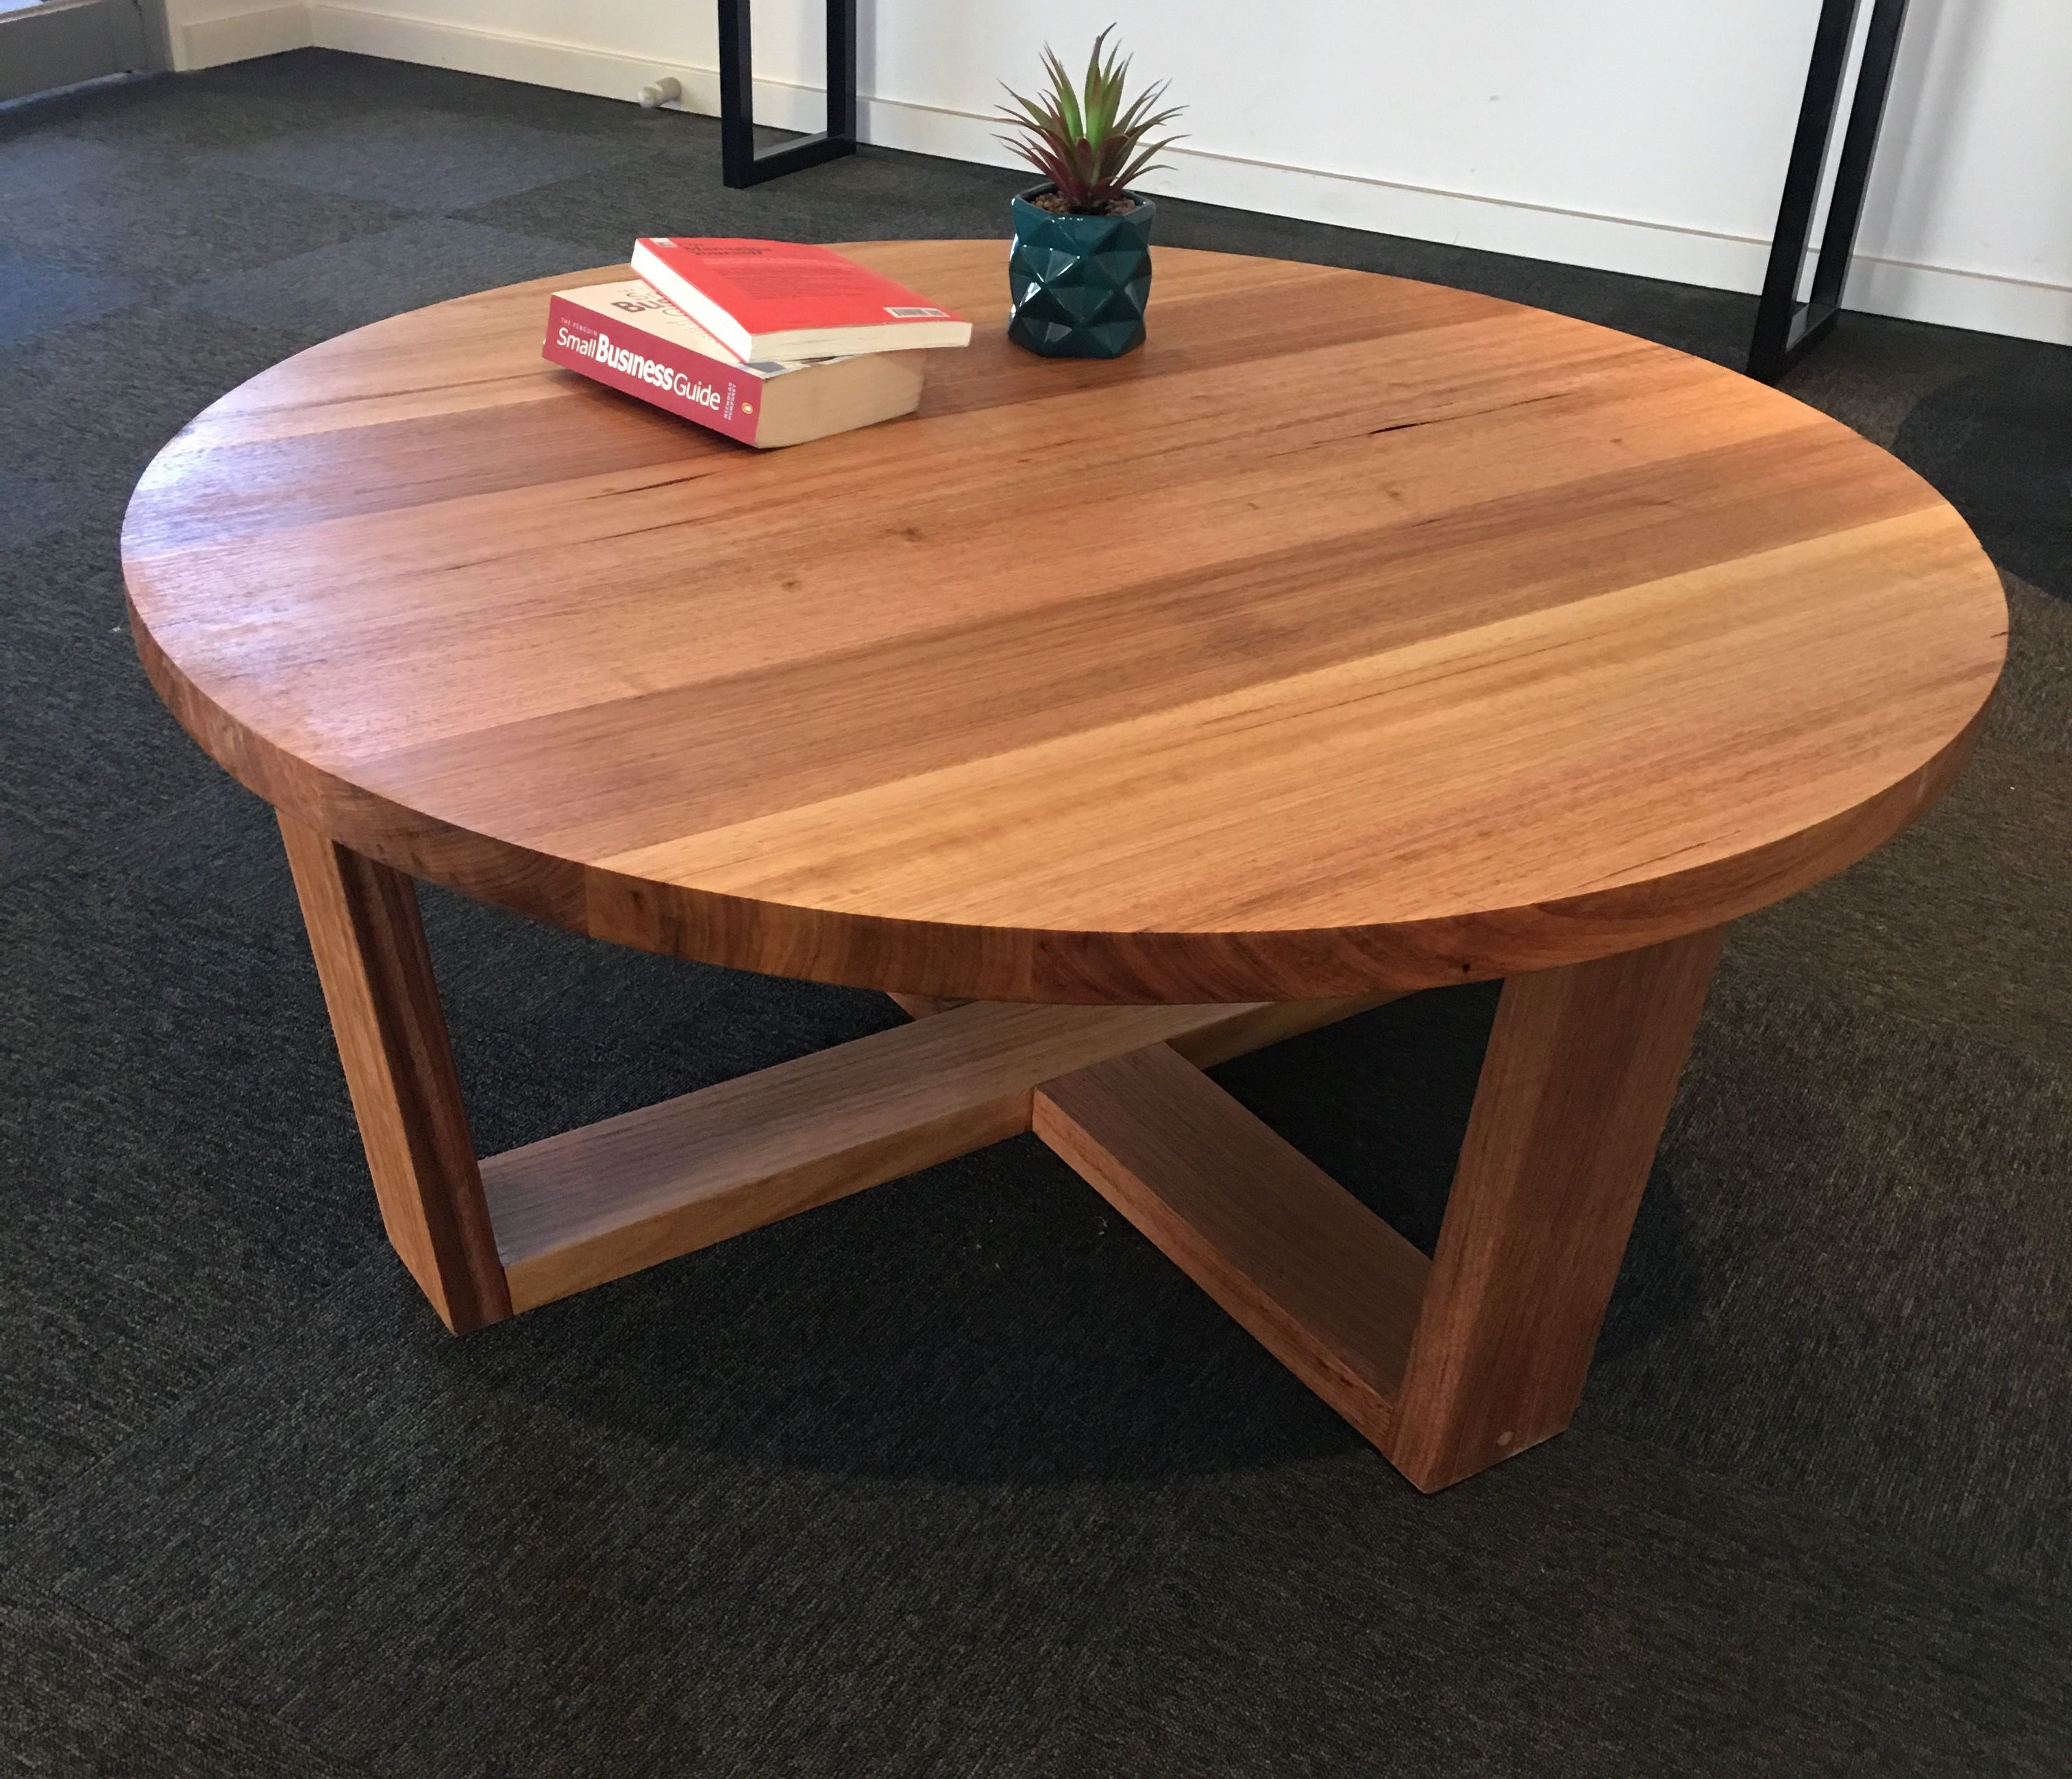 Oak Coffee Tables Traditional Material For Good Looks Coffee